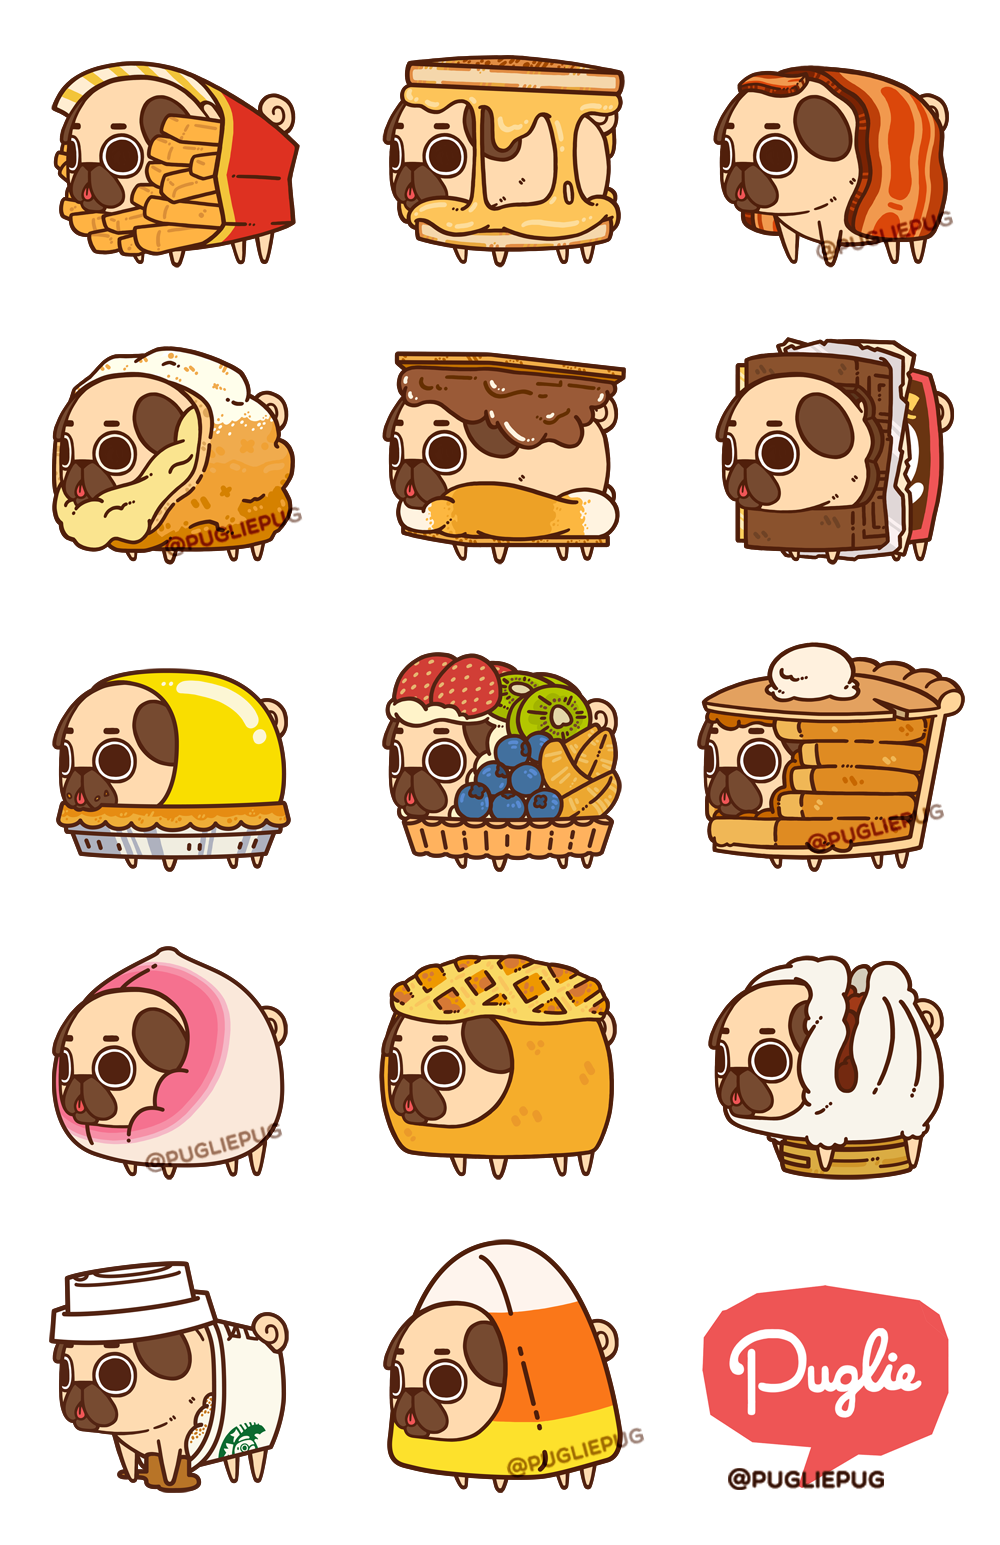 Bacon clipart vote. Puglie food series previous